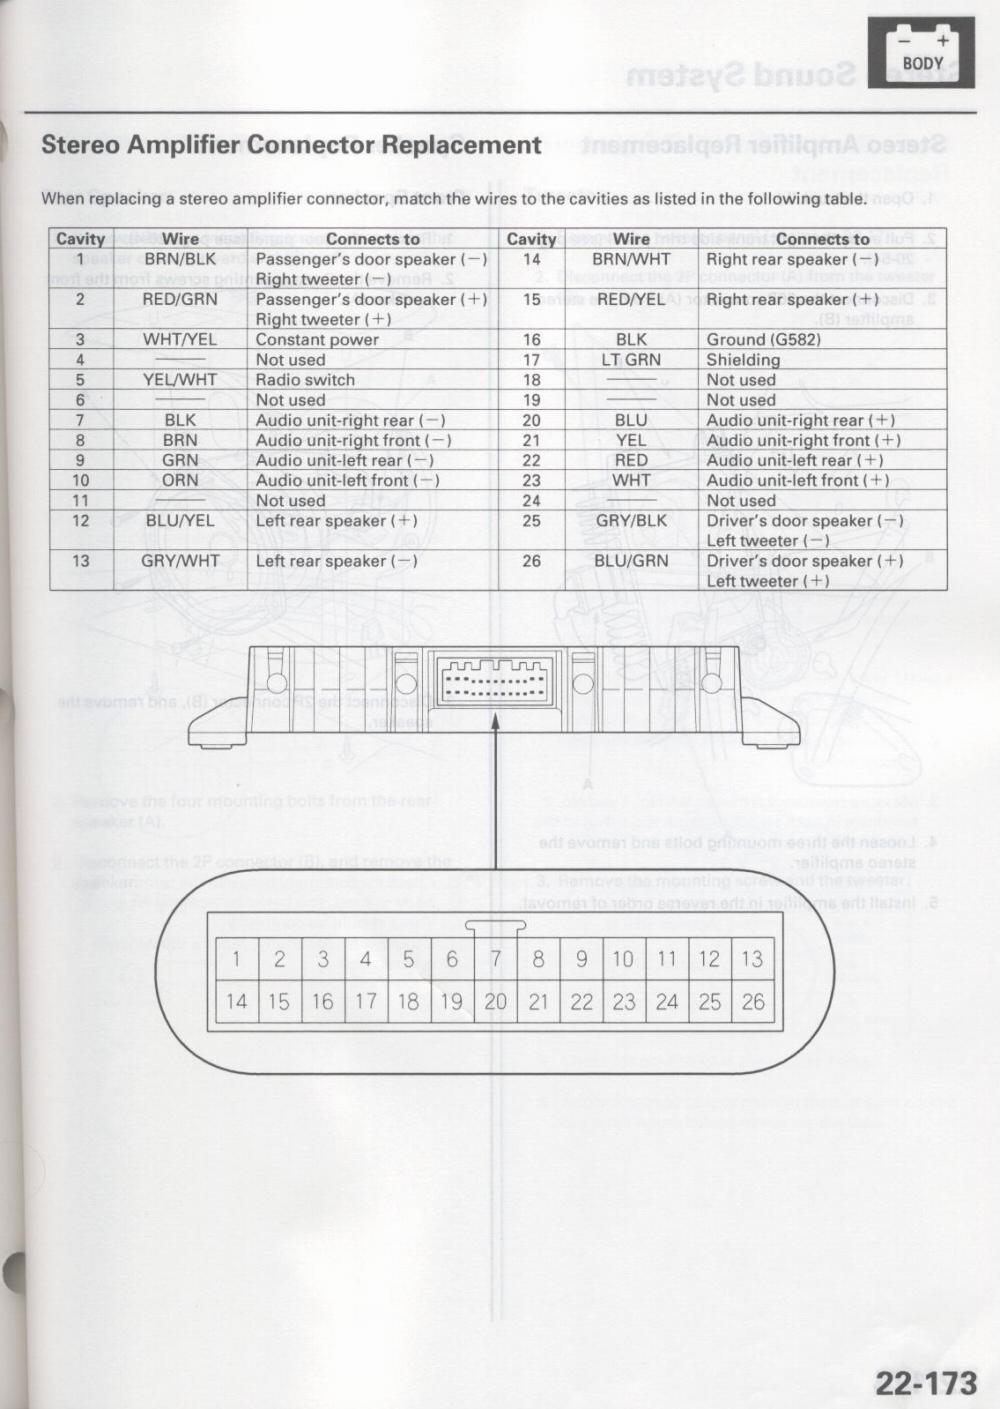 acura 2002 tl head unit pinout diagram. Black Bedroom Furniture Sets. Home Design Ideas